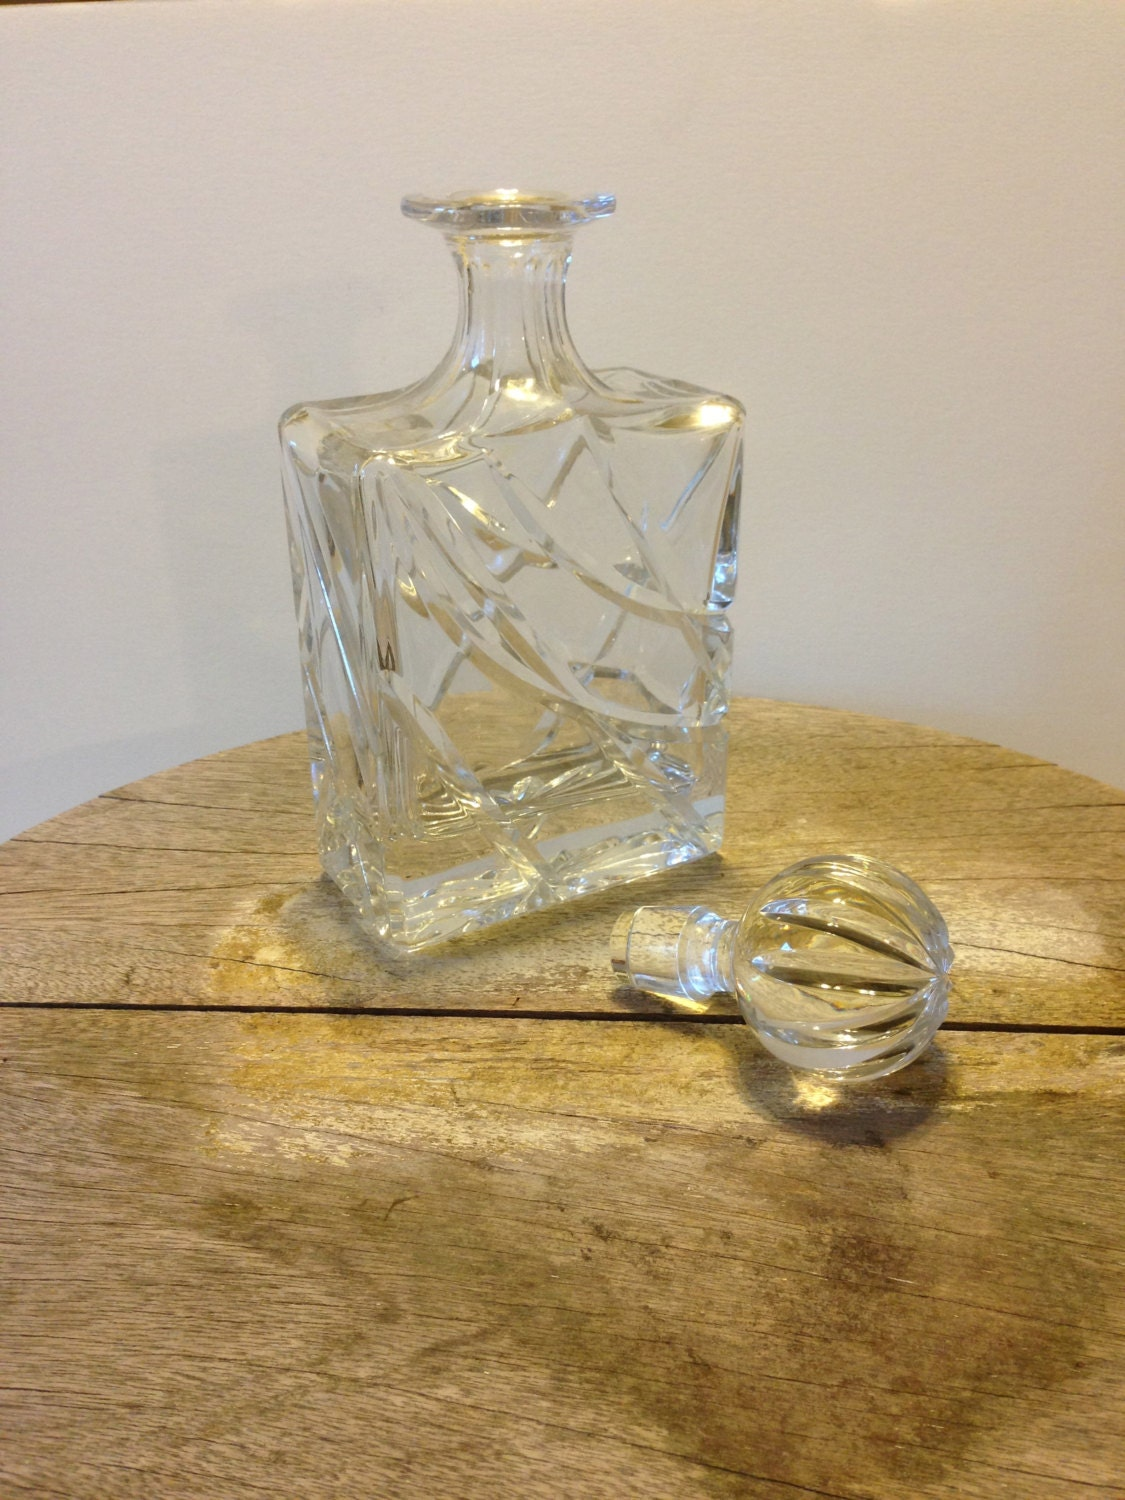 Ofnah Crystal Decanter Made in Poland